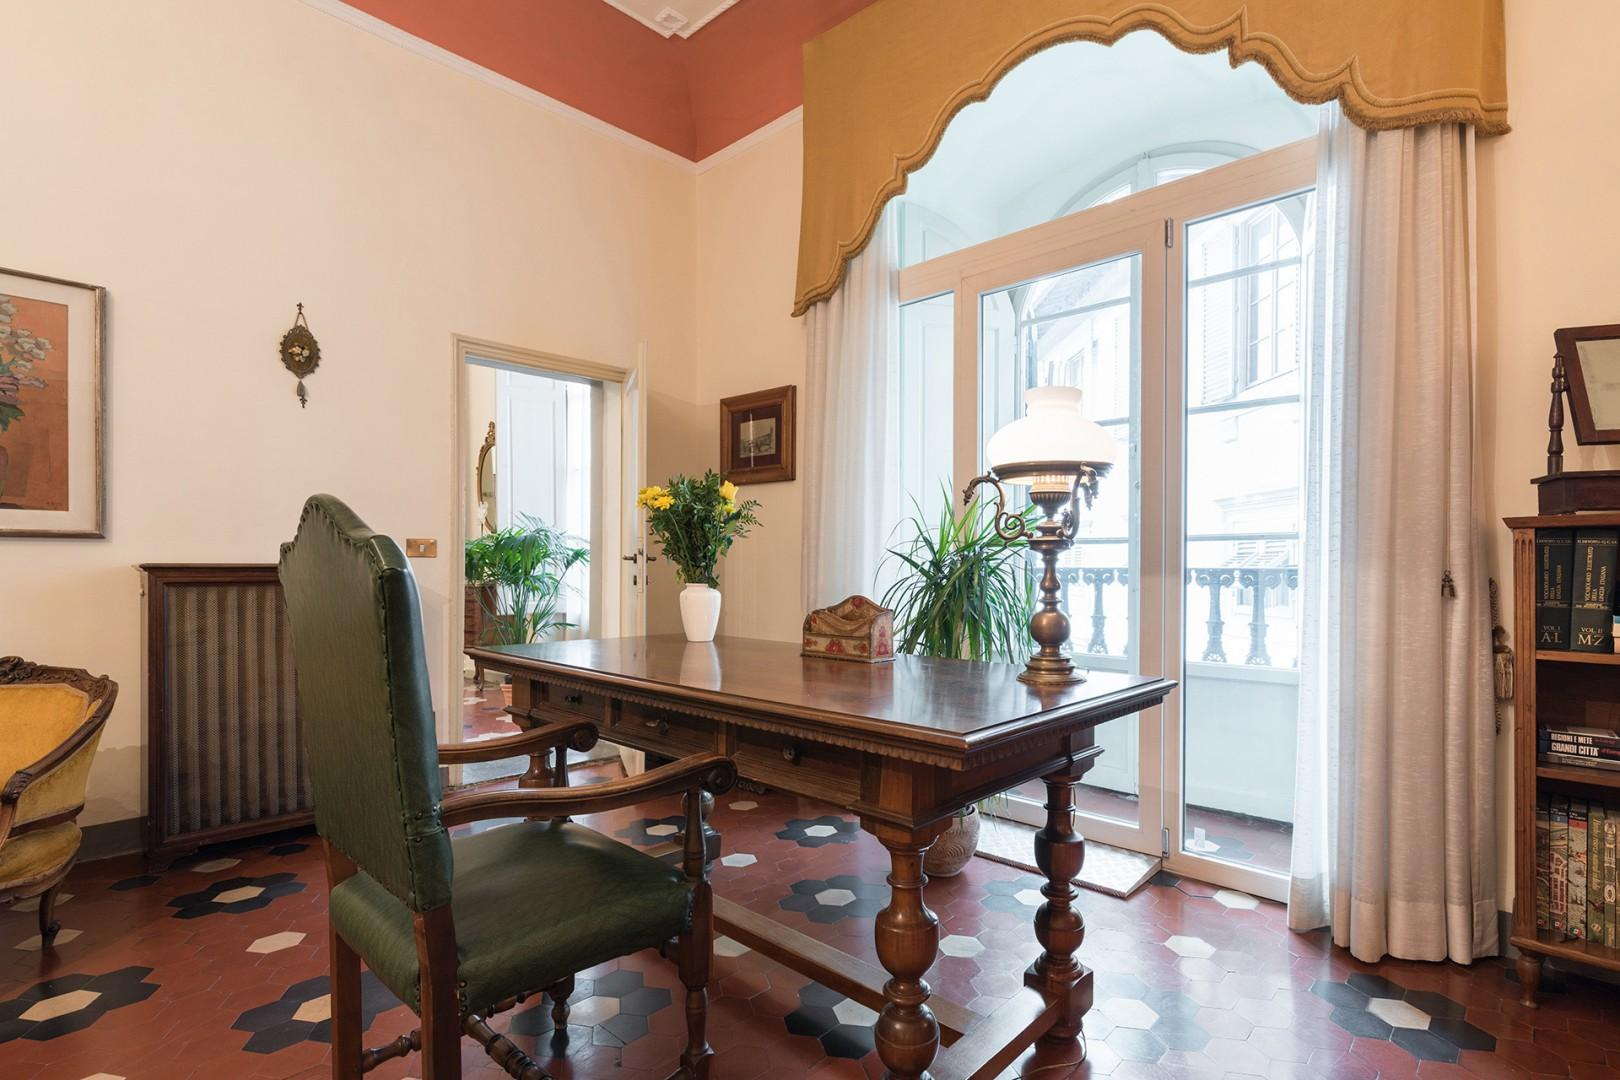 Antique writing desk in bedroom in front of bright window.